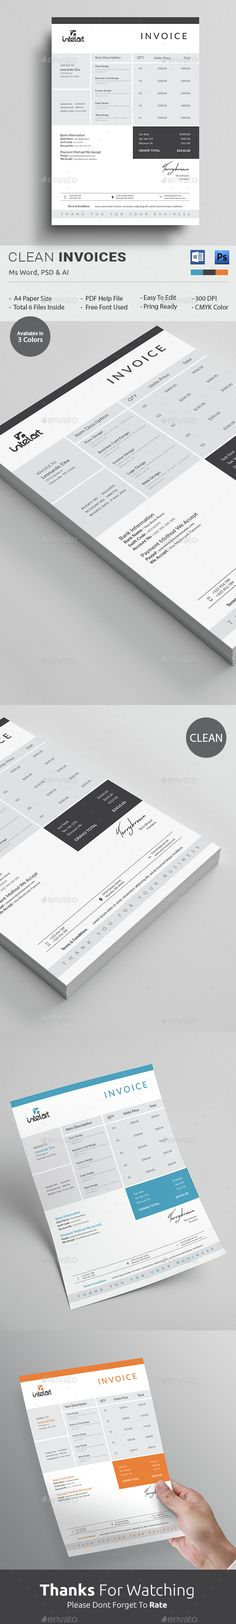 PSD Invoice Template, purely clean but truly professional. Download http://graphicriver.net/item/invoice/14984927?ref=themedevisers